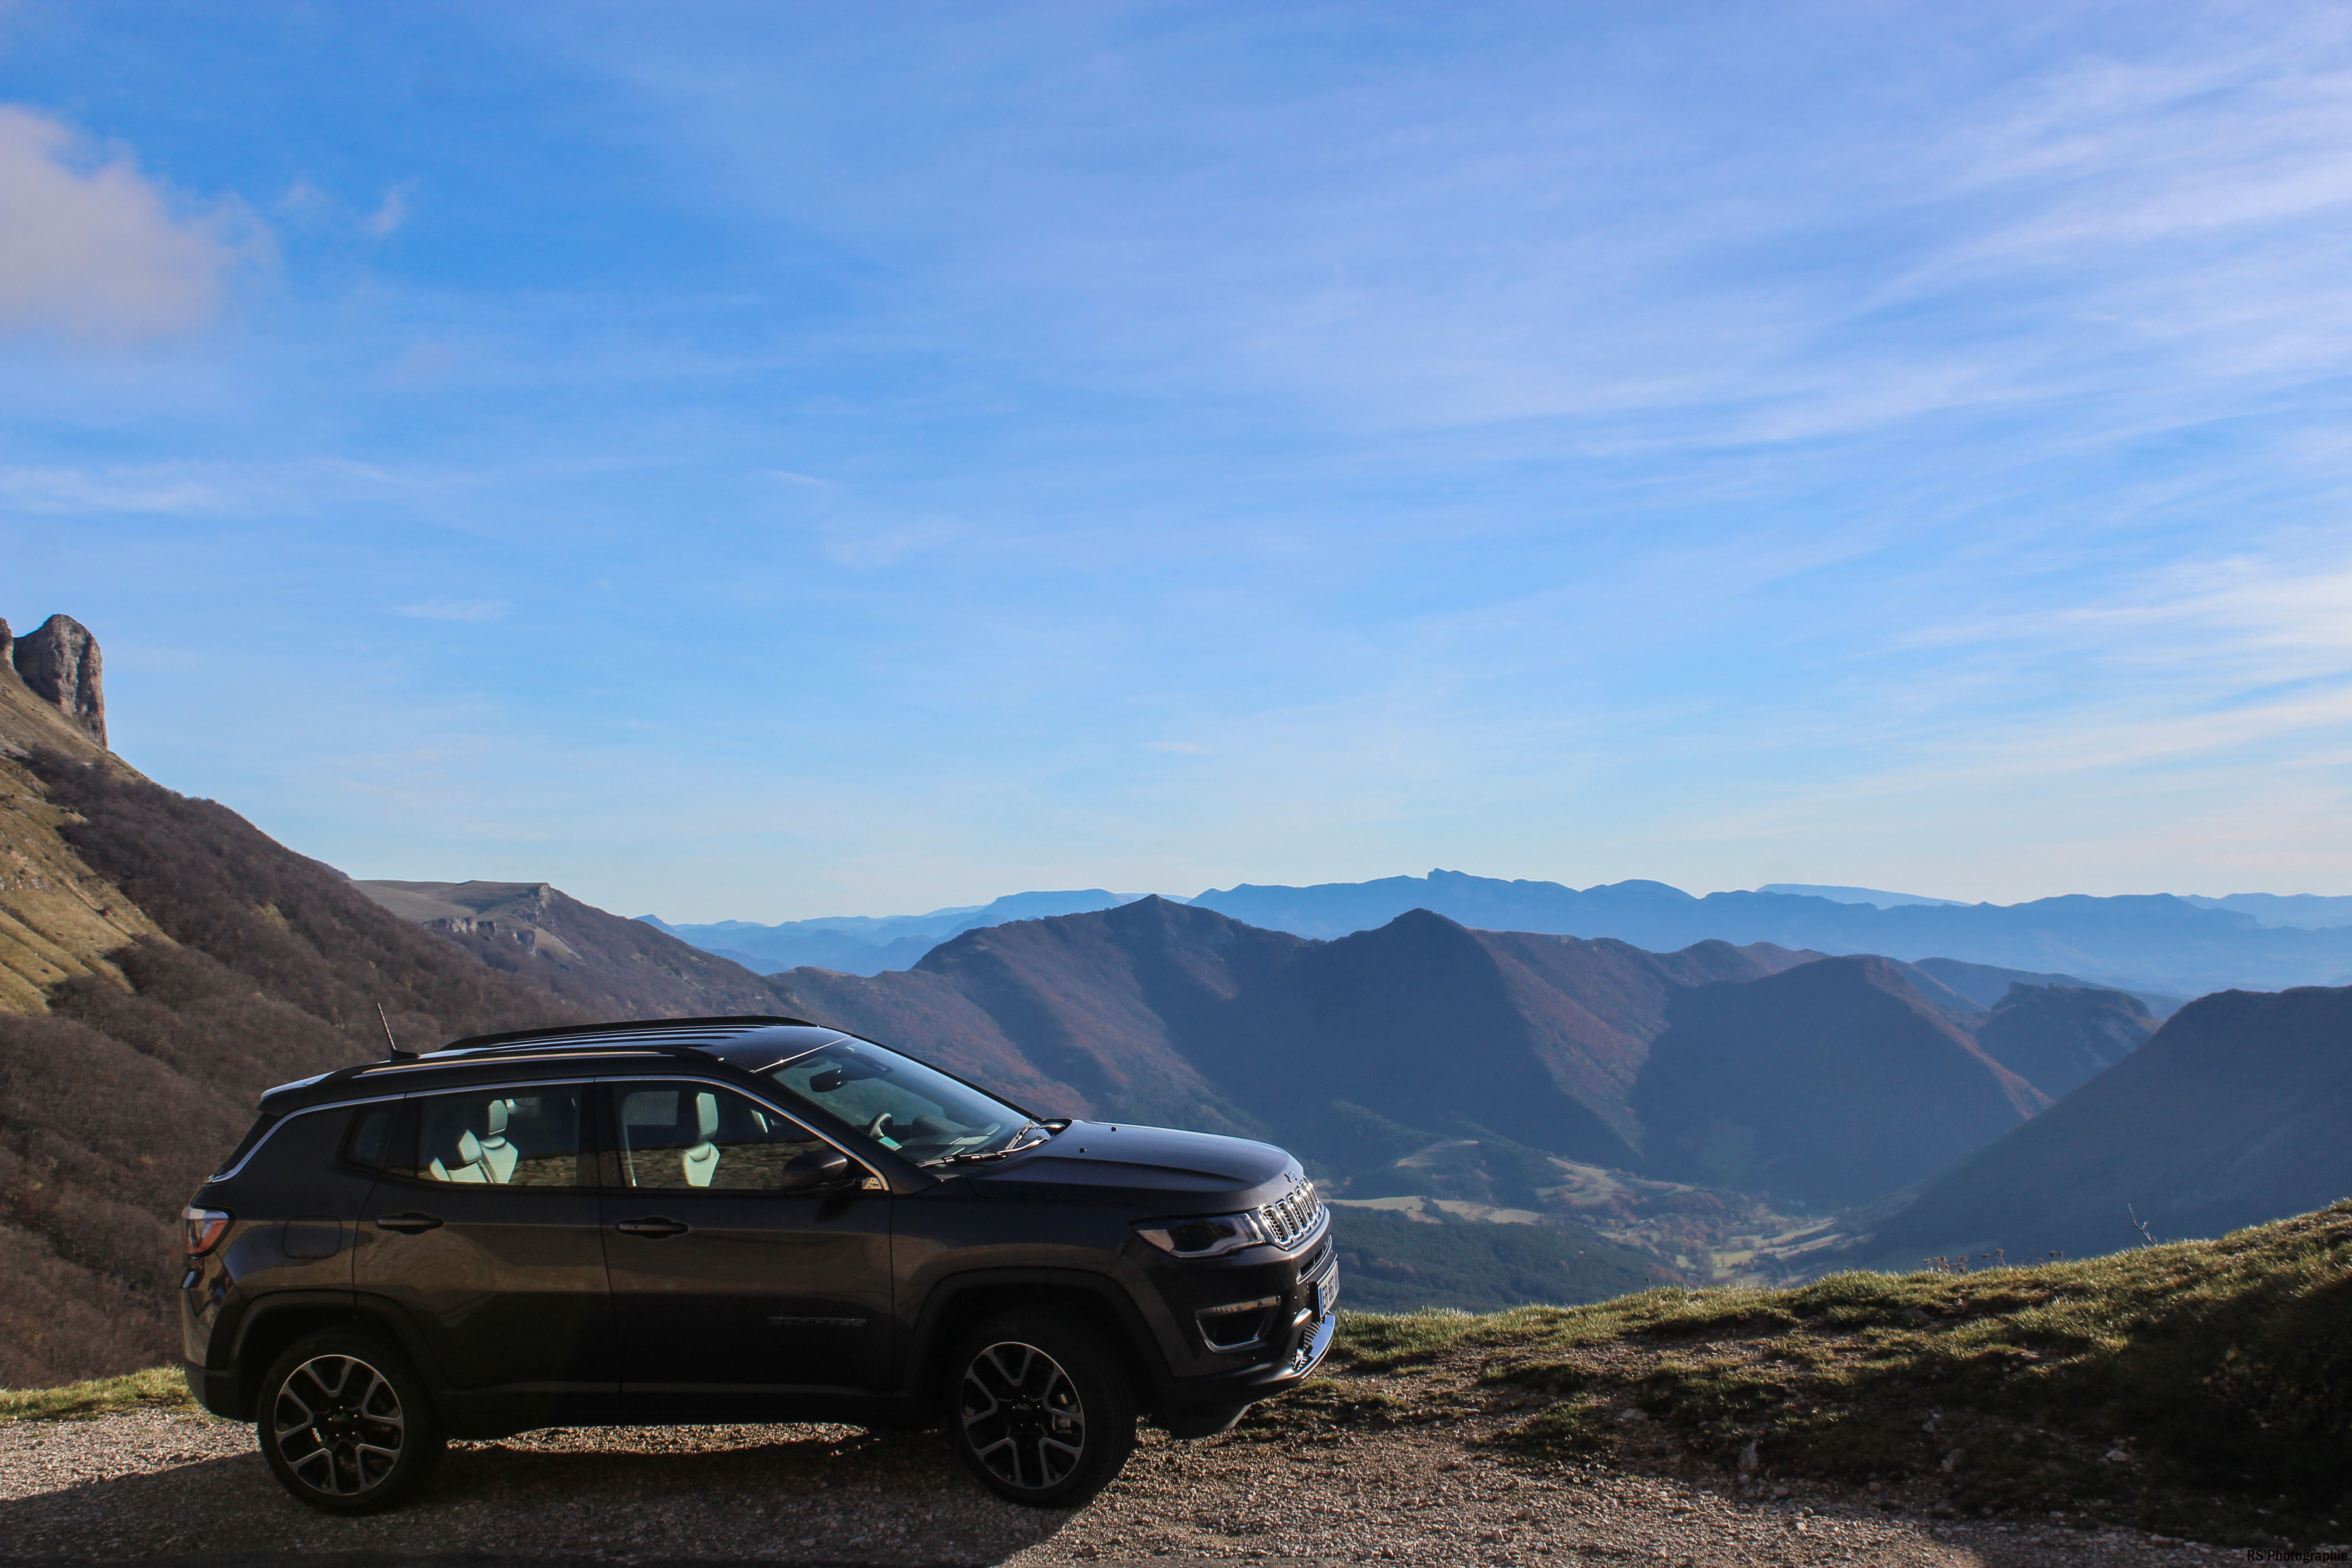 jeepcompass55-jeep-compass-profil-side-Arnaud Demasier-RSPhotographie